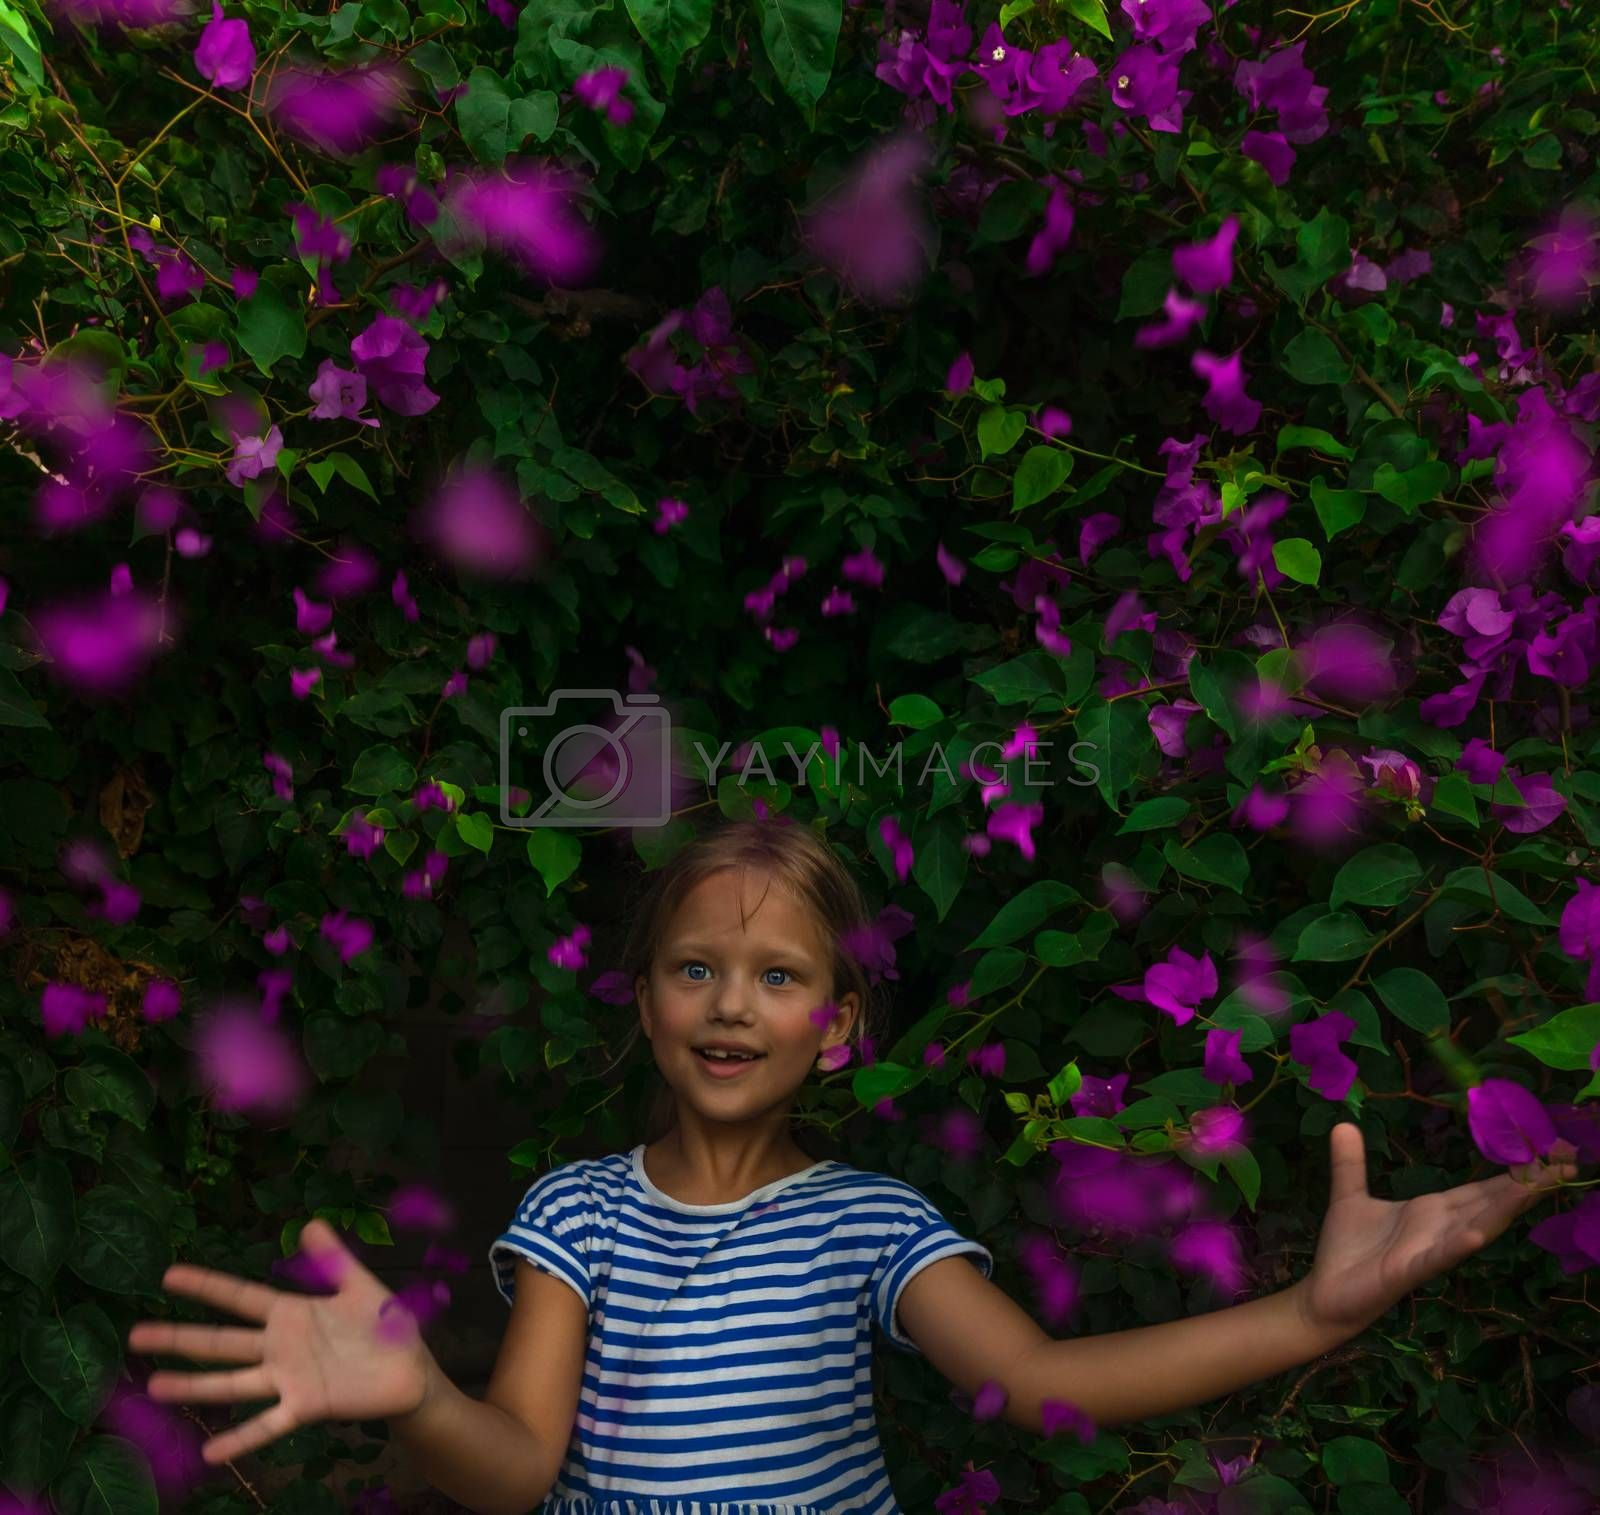 Portrait of a Cute Little Girl Among Beautiful Fresh Purple Flowers on the Bush. Sweet Child over Floral Background. Young Happy Baby Gardener.